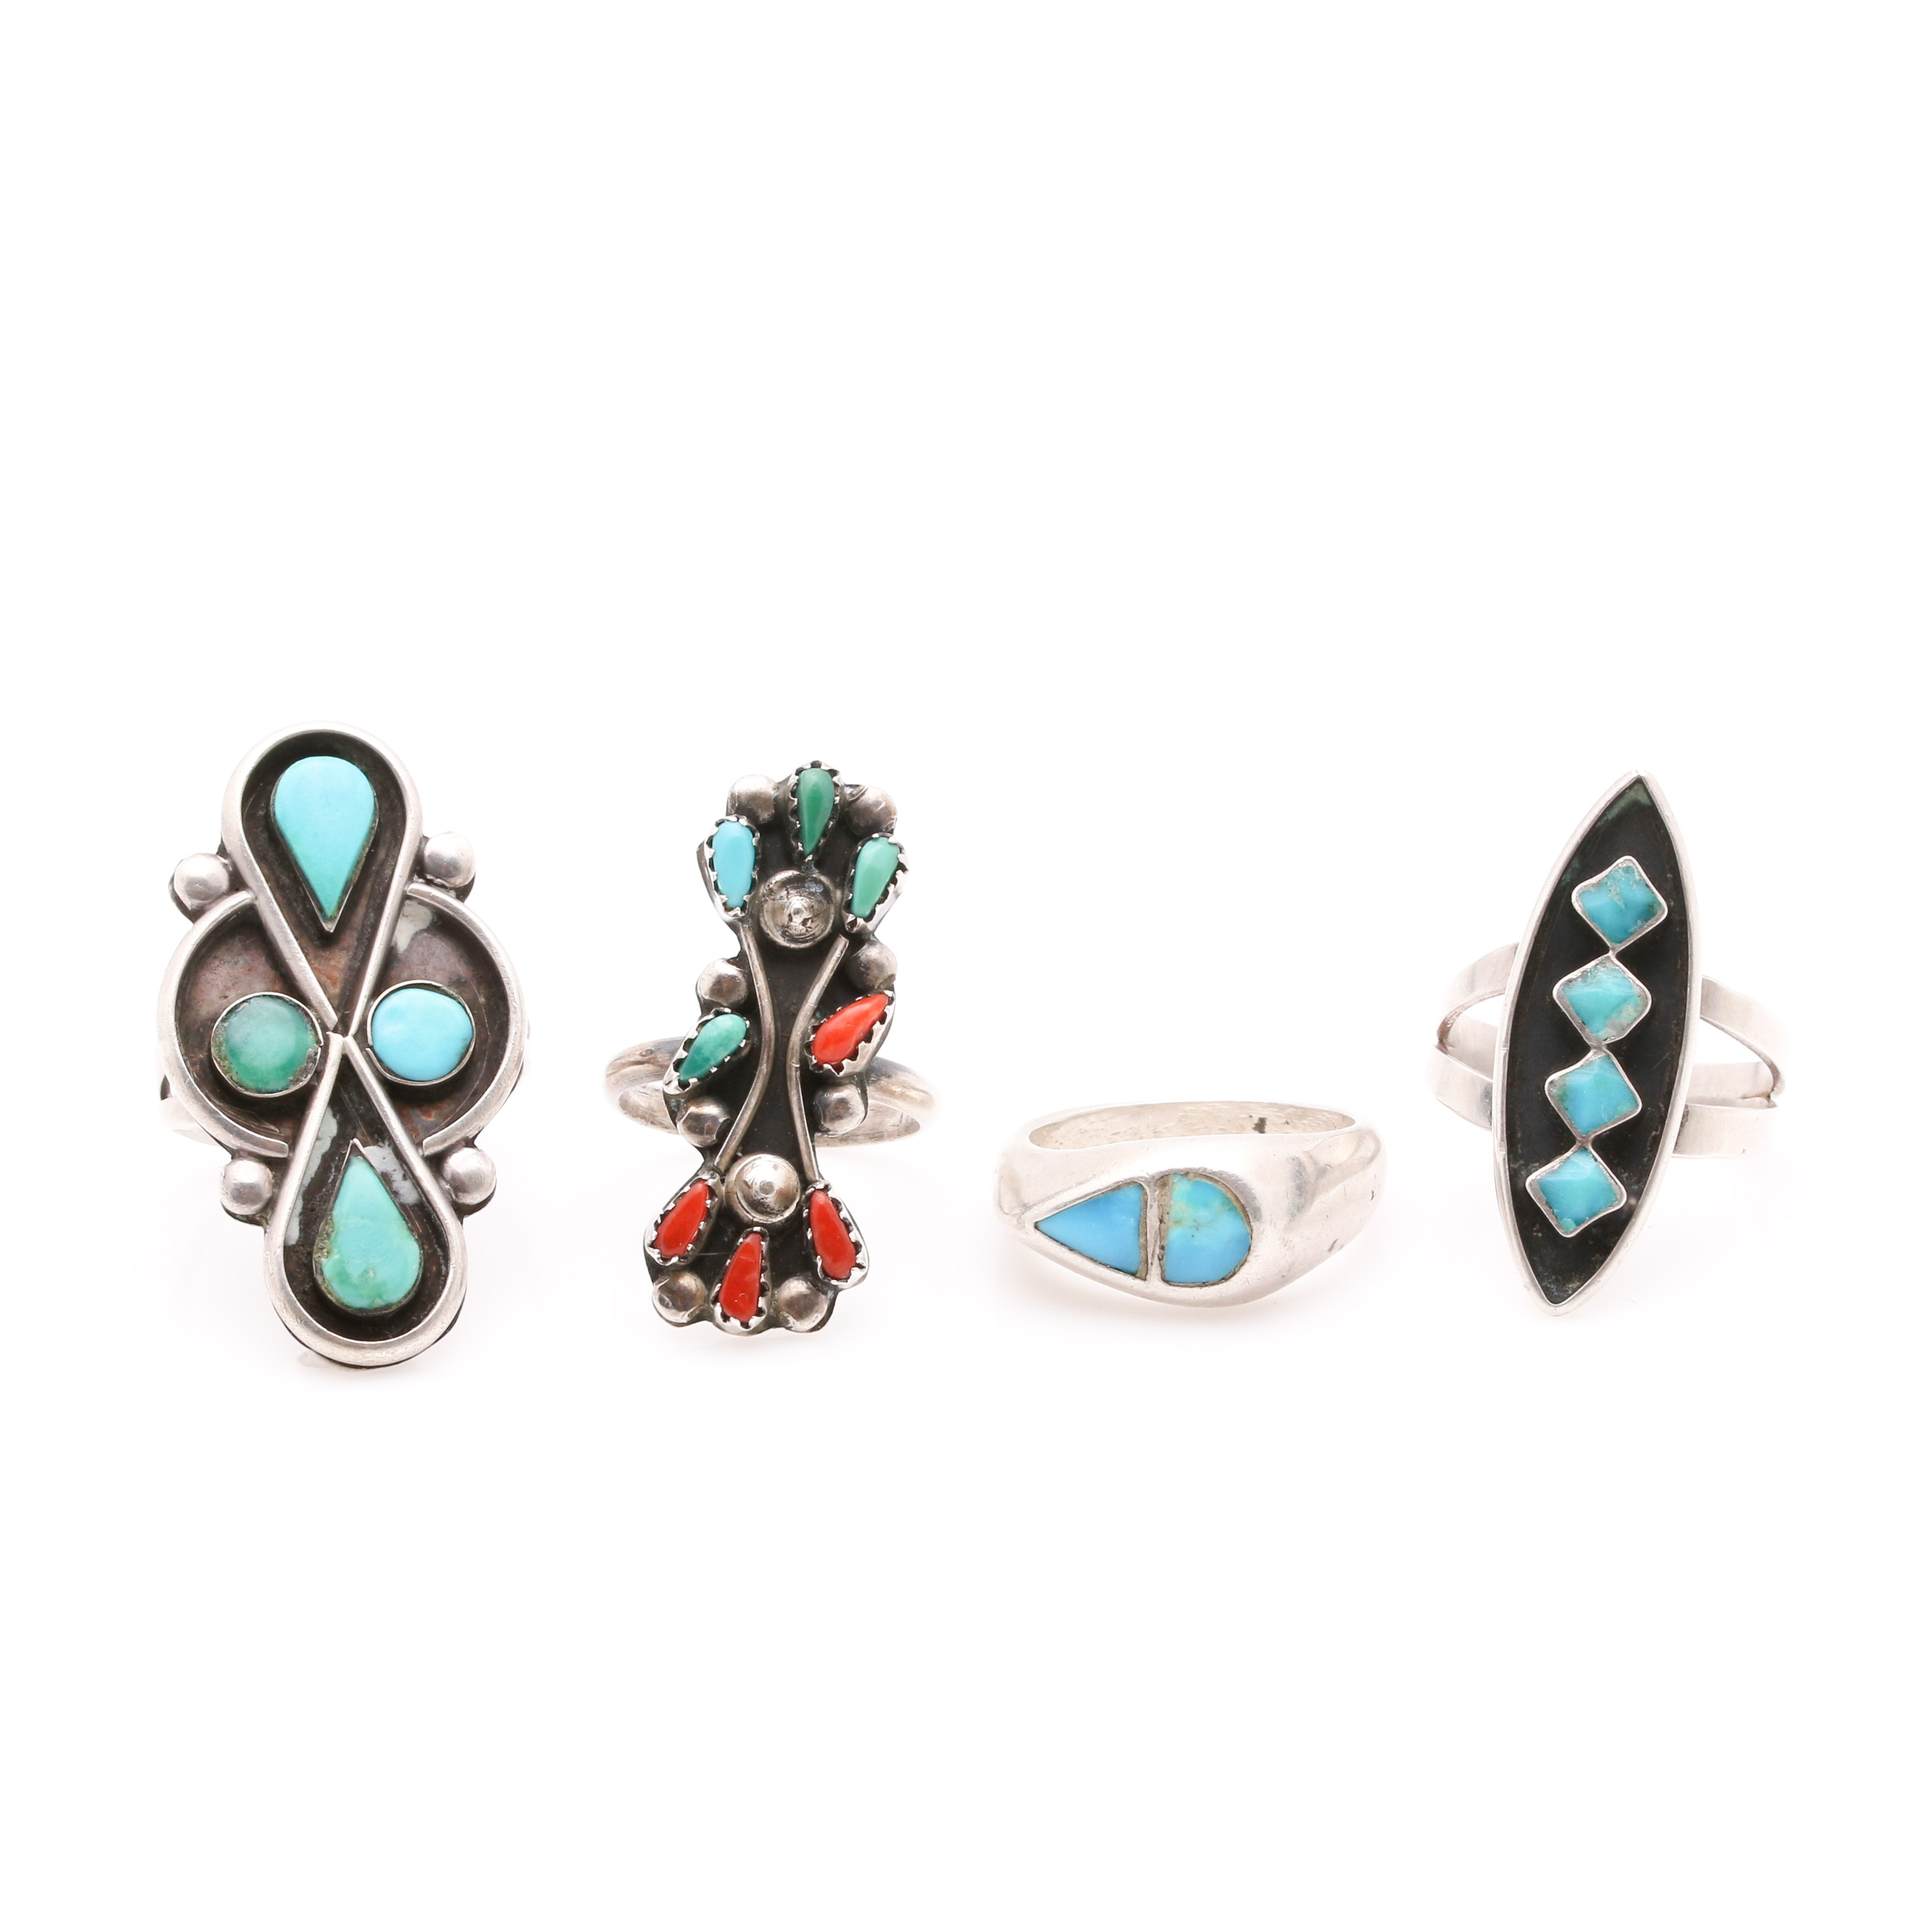 Assortment of Sterling Silver, Turquoise and Coral Rings